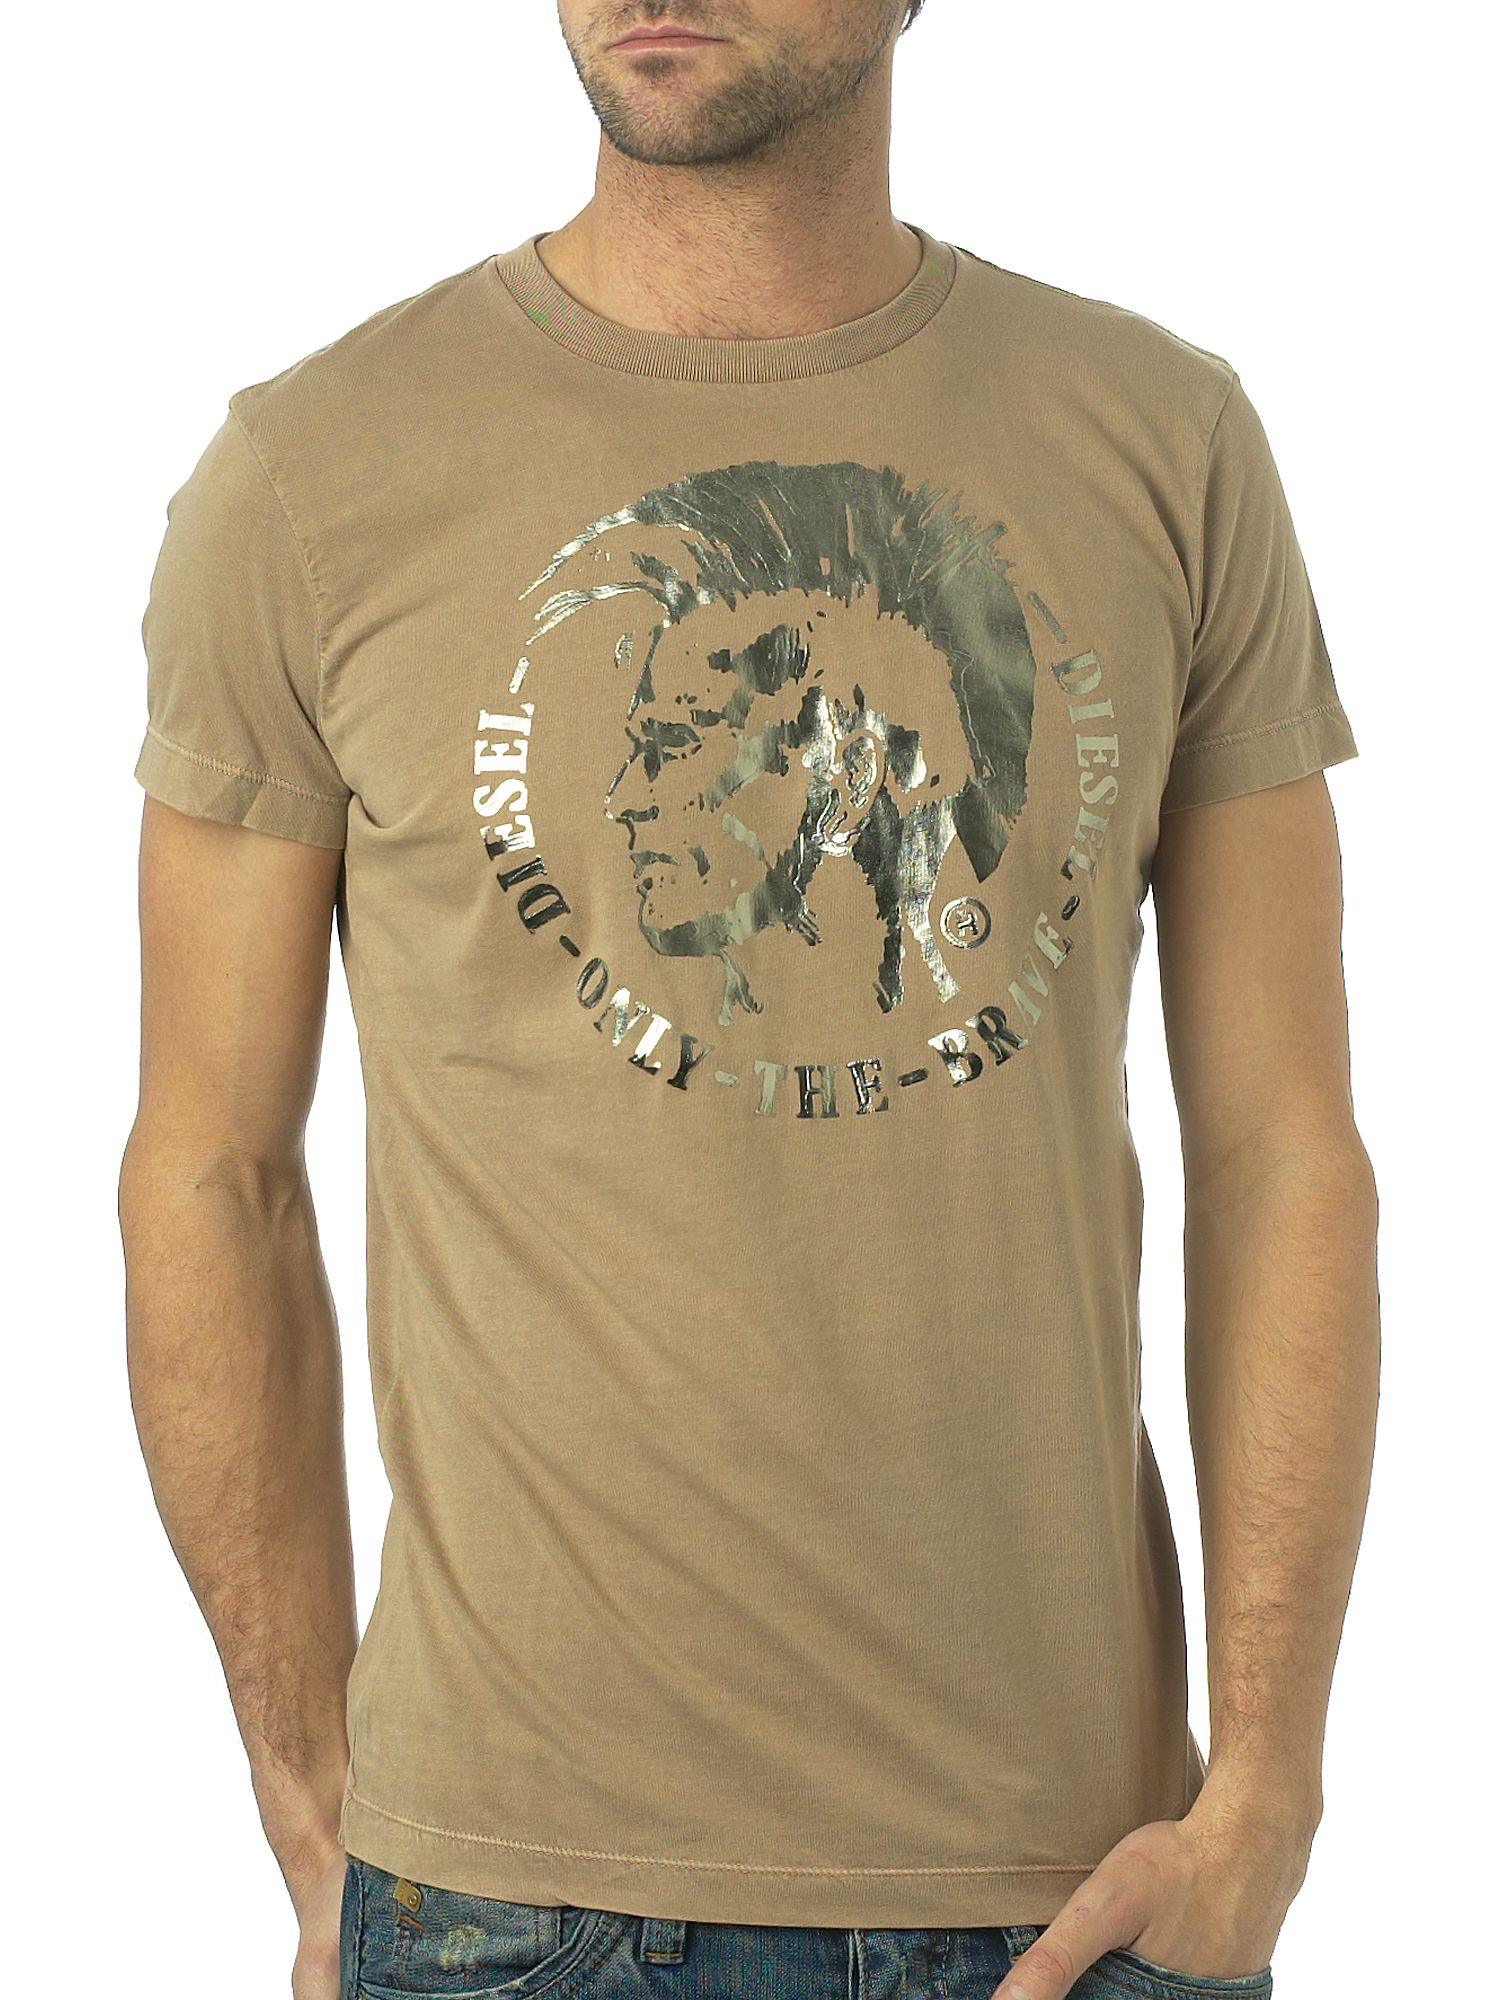 Diesel Foil t-shirt Light Brown product image